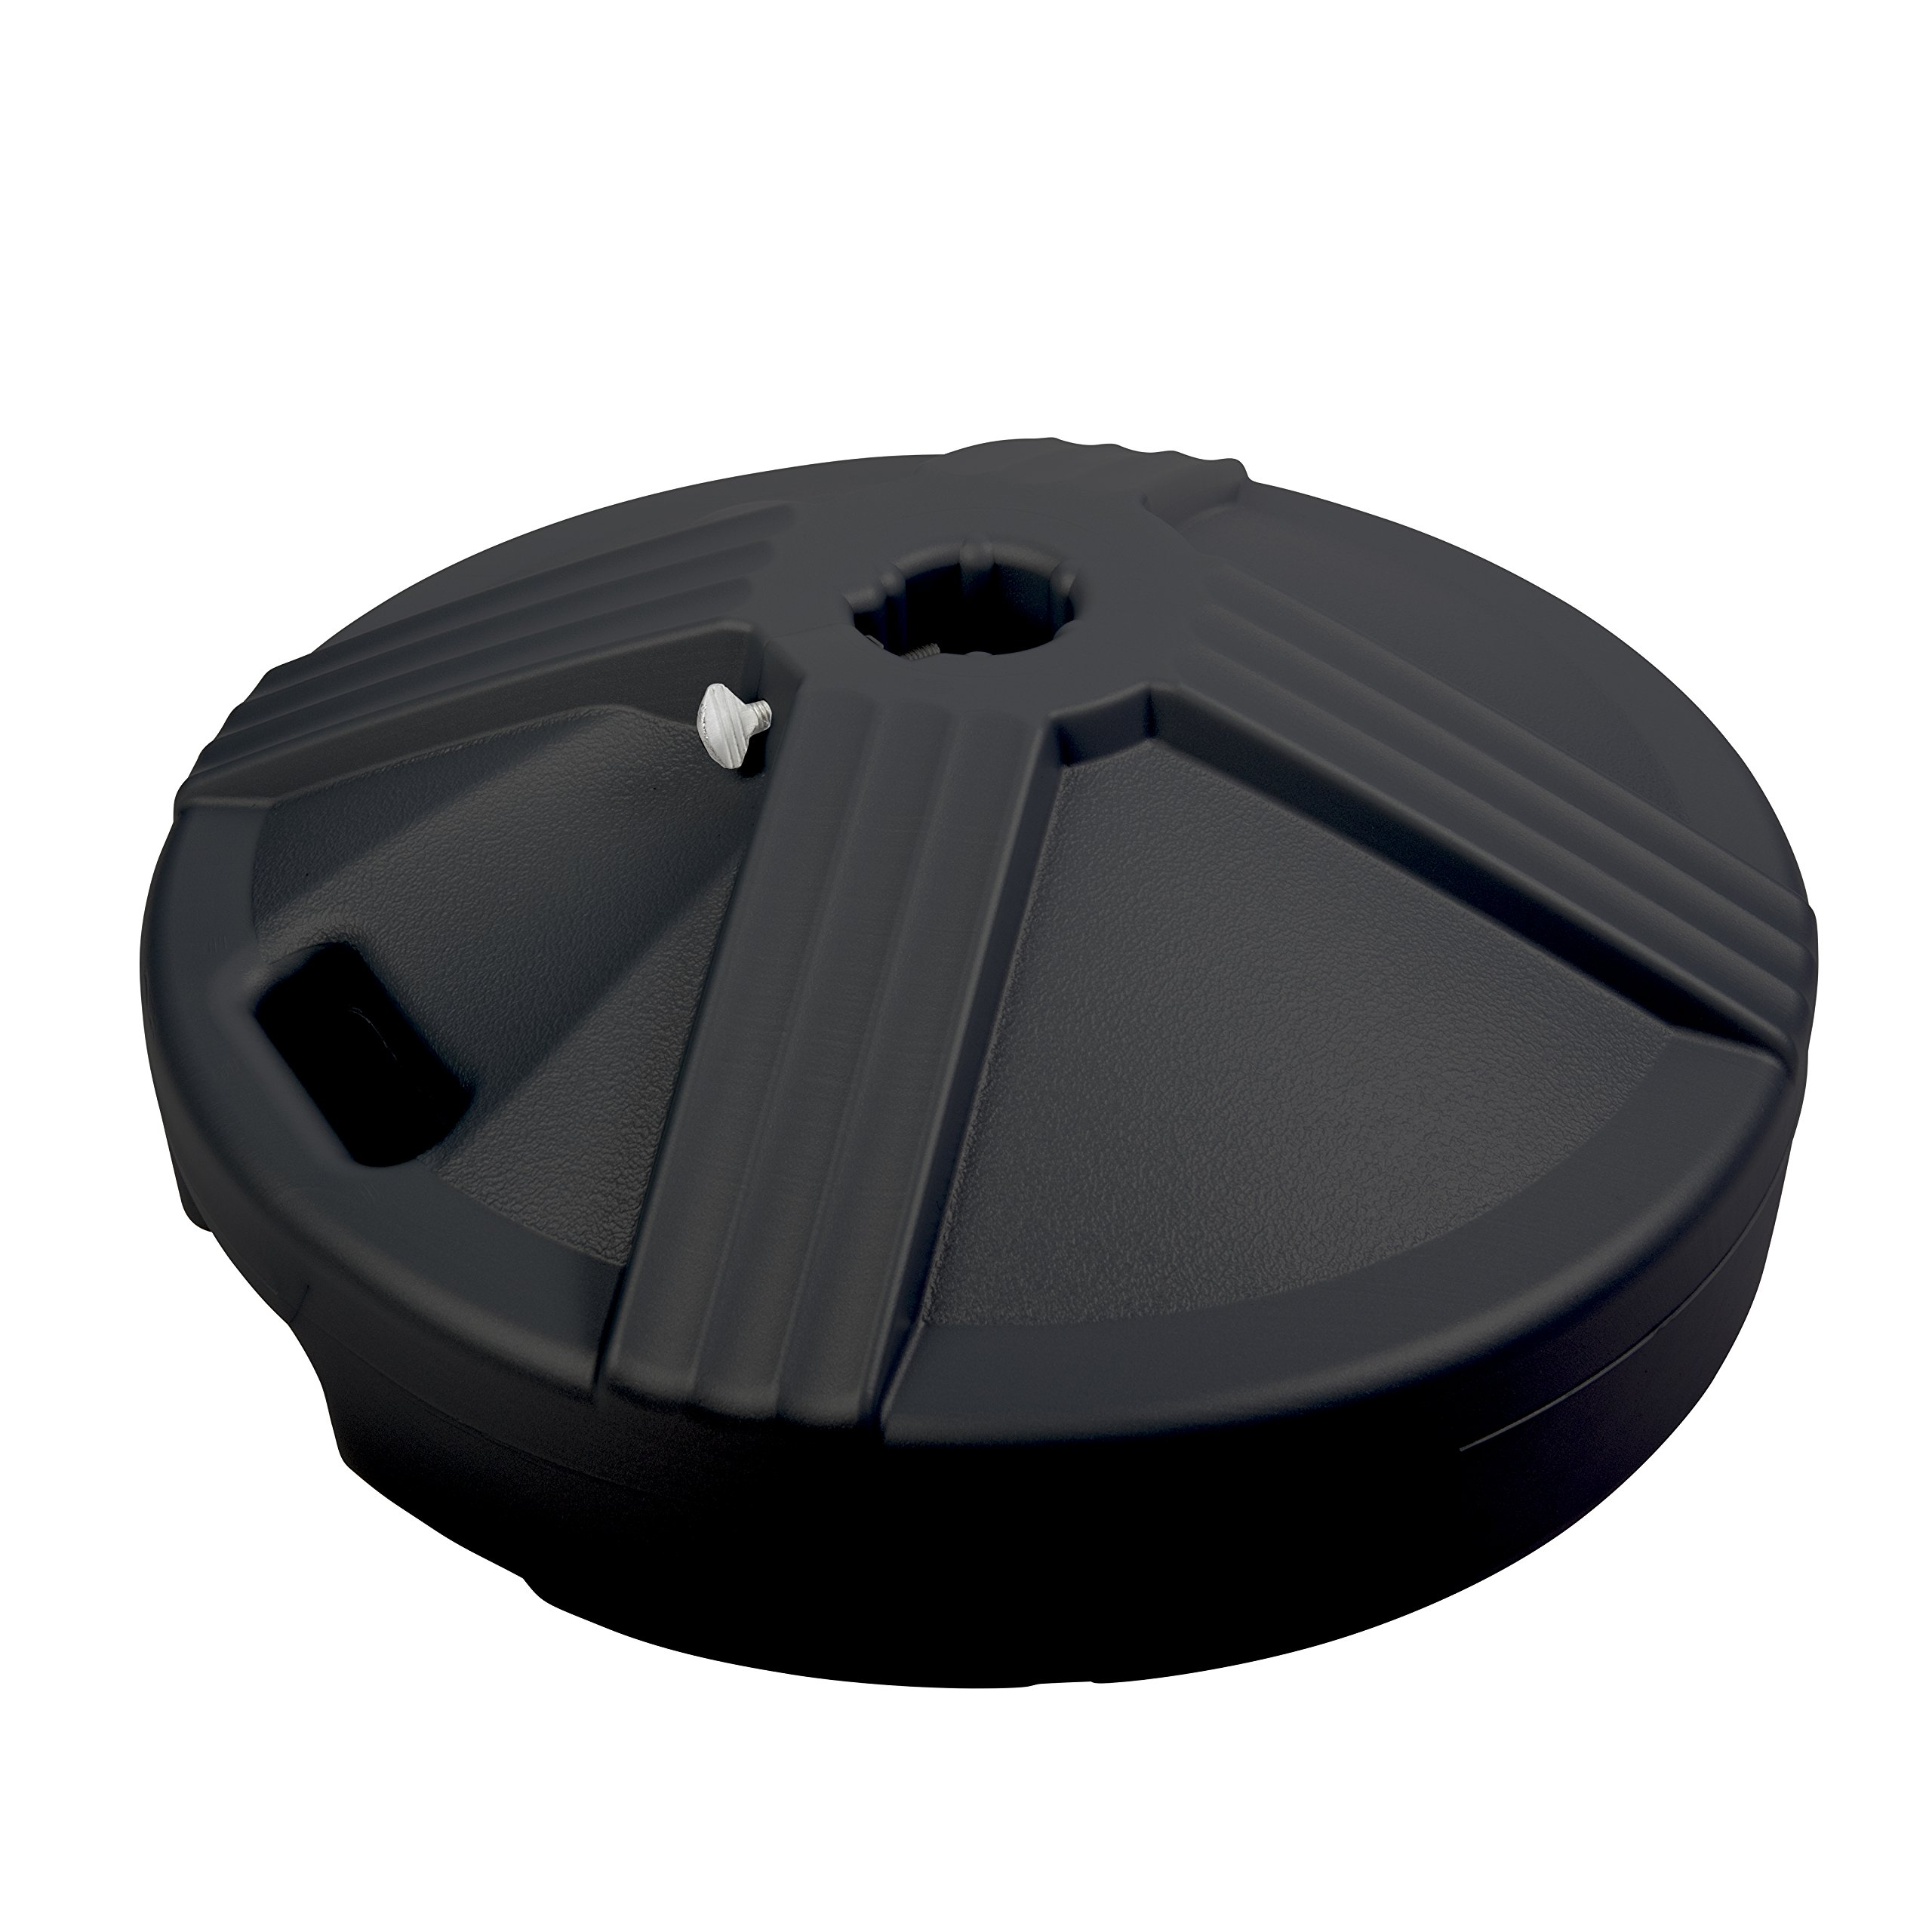 US Weight Durable 50 Pound Umbrella Base Designed to be Used with a Patio Table (Black) by US Weight